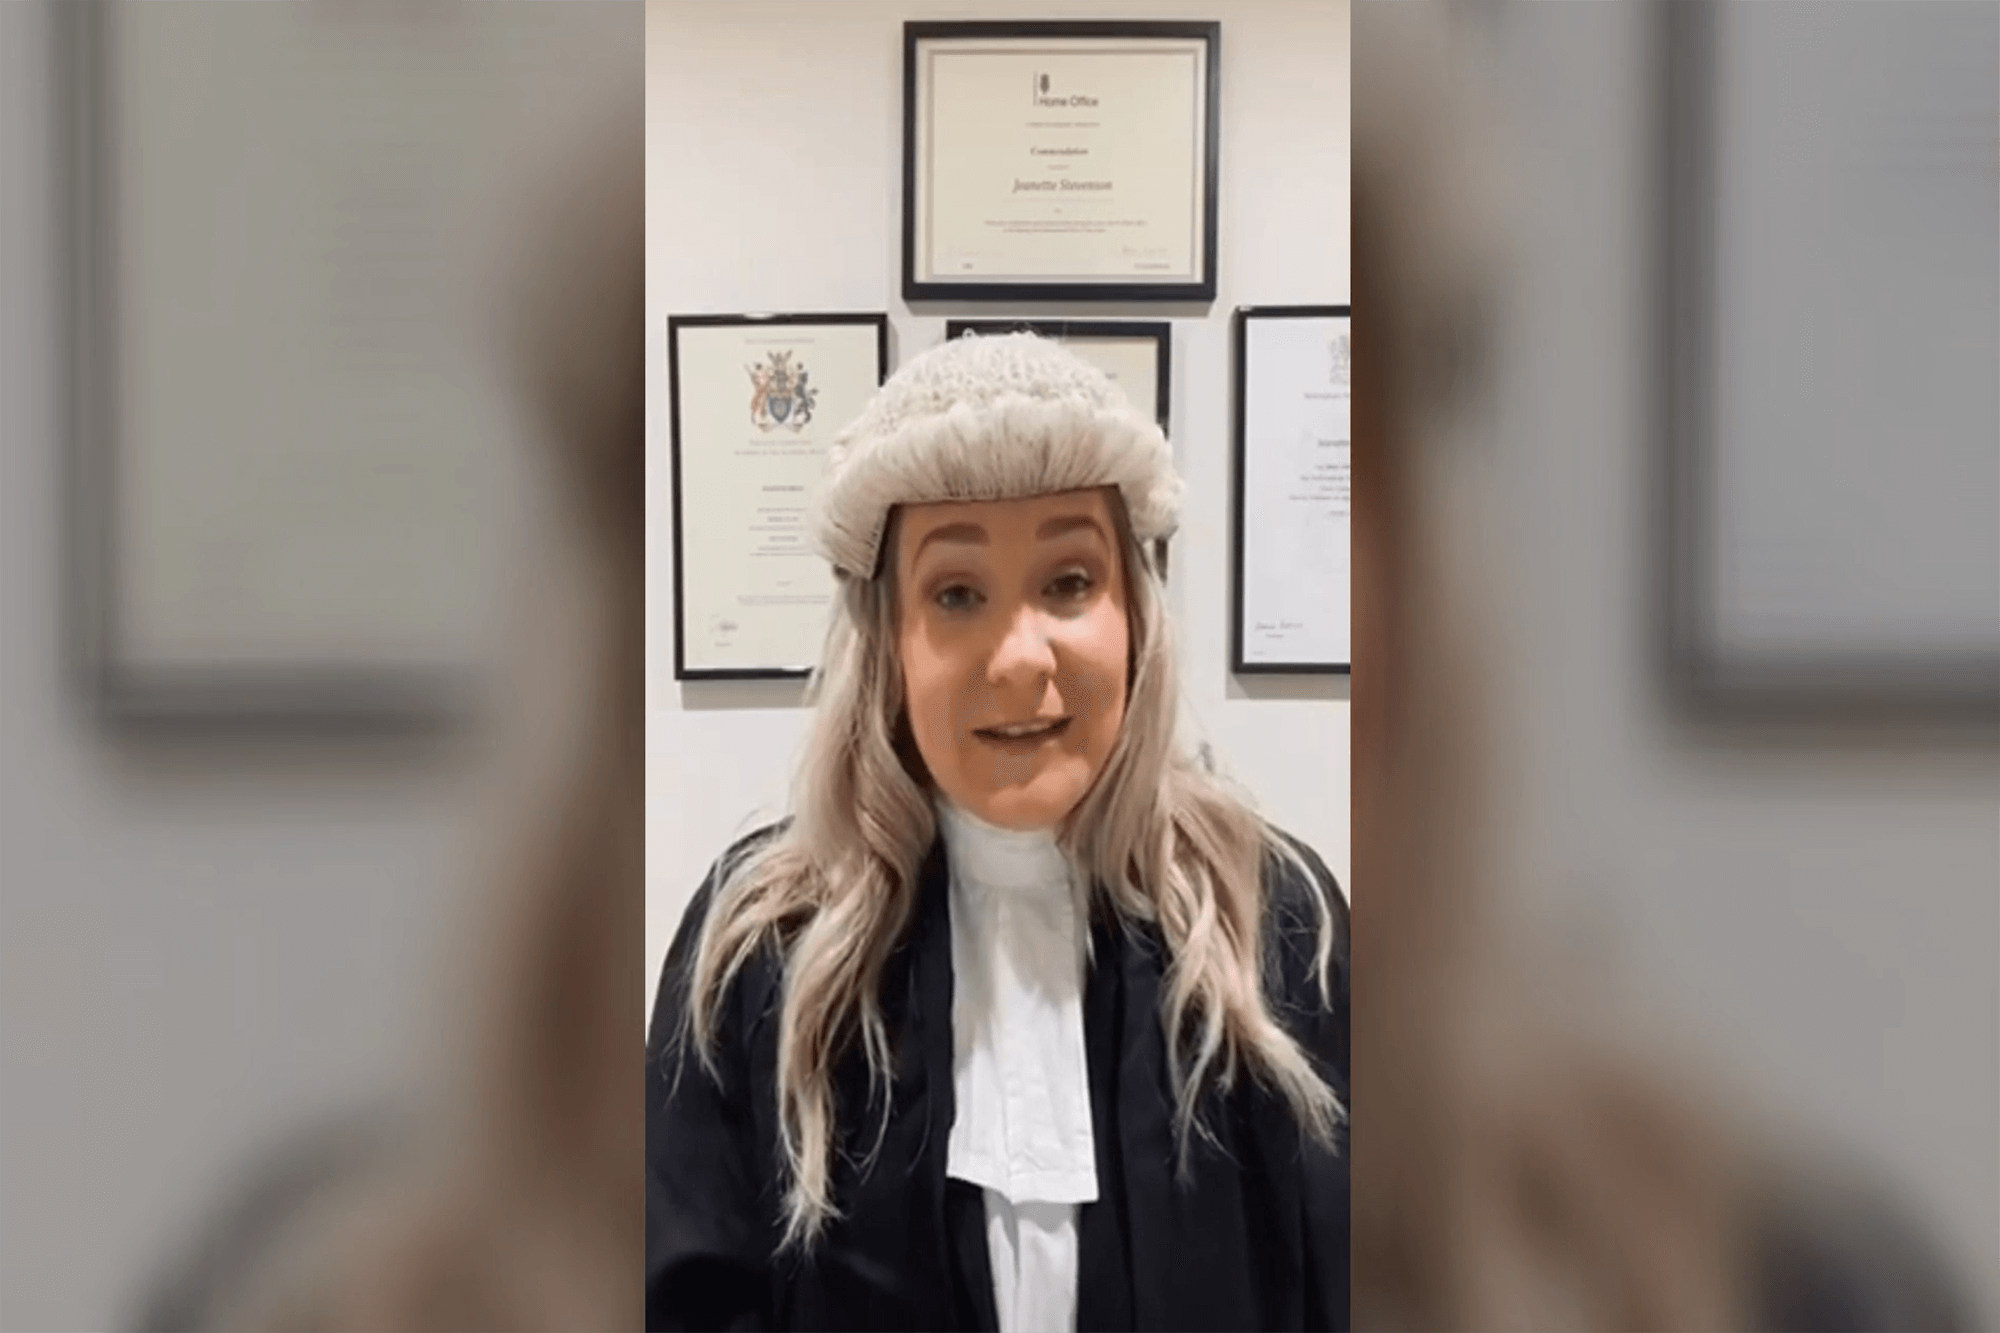 Jeanette wearing a barrister's gown, white shirt and black jacket